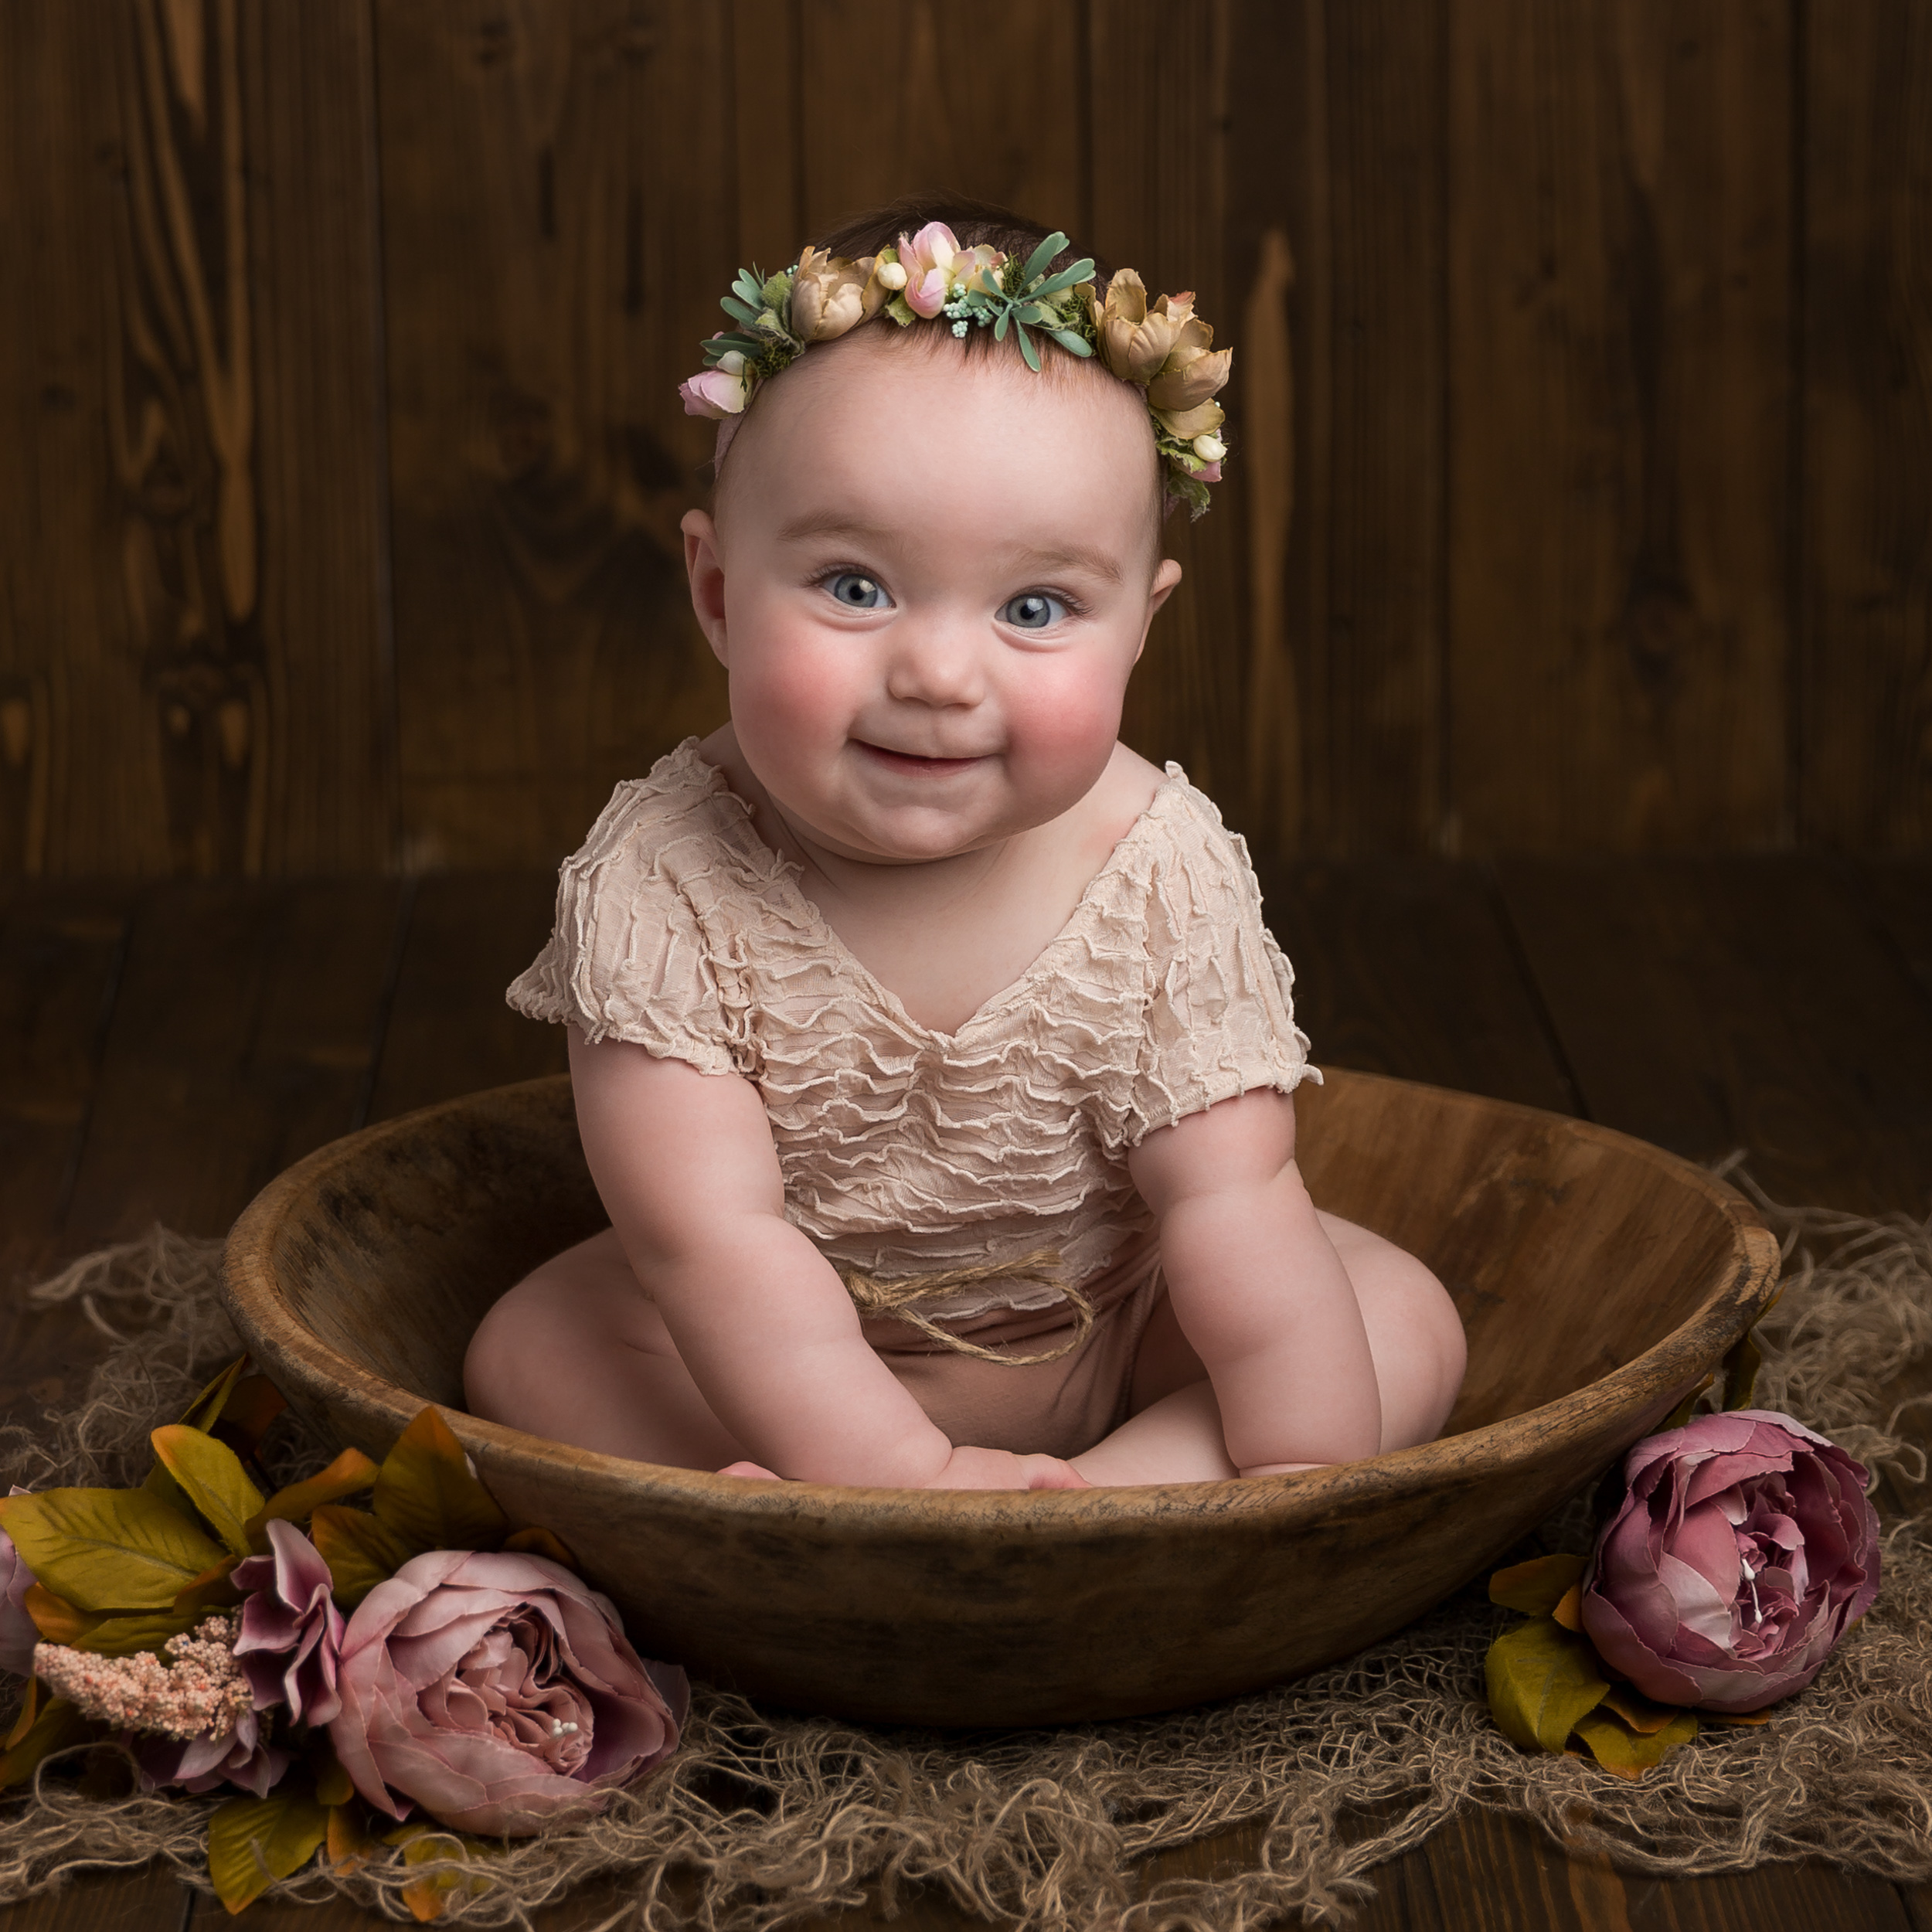 6 month old baby sitting in a bowl taken during a milestone portrait session in Sandbach, Cheshire